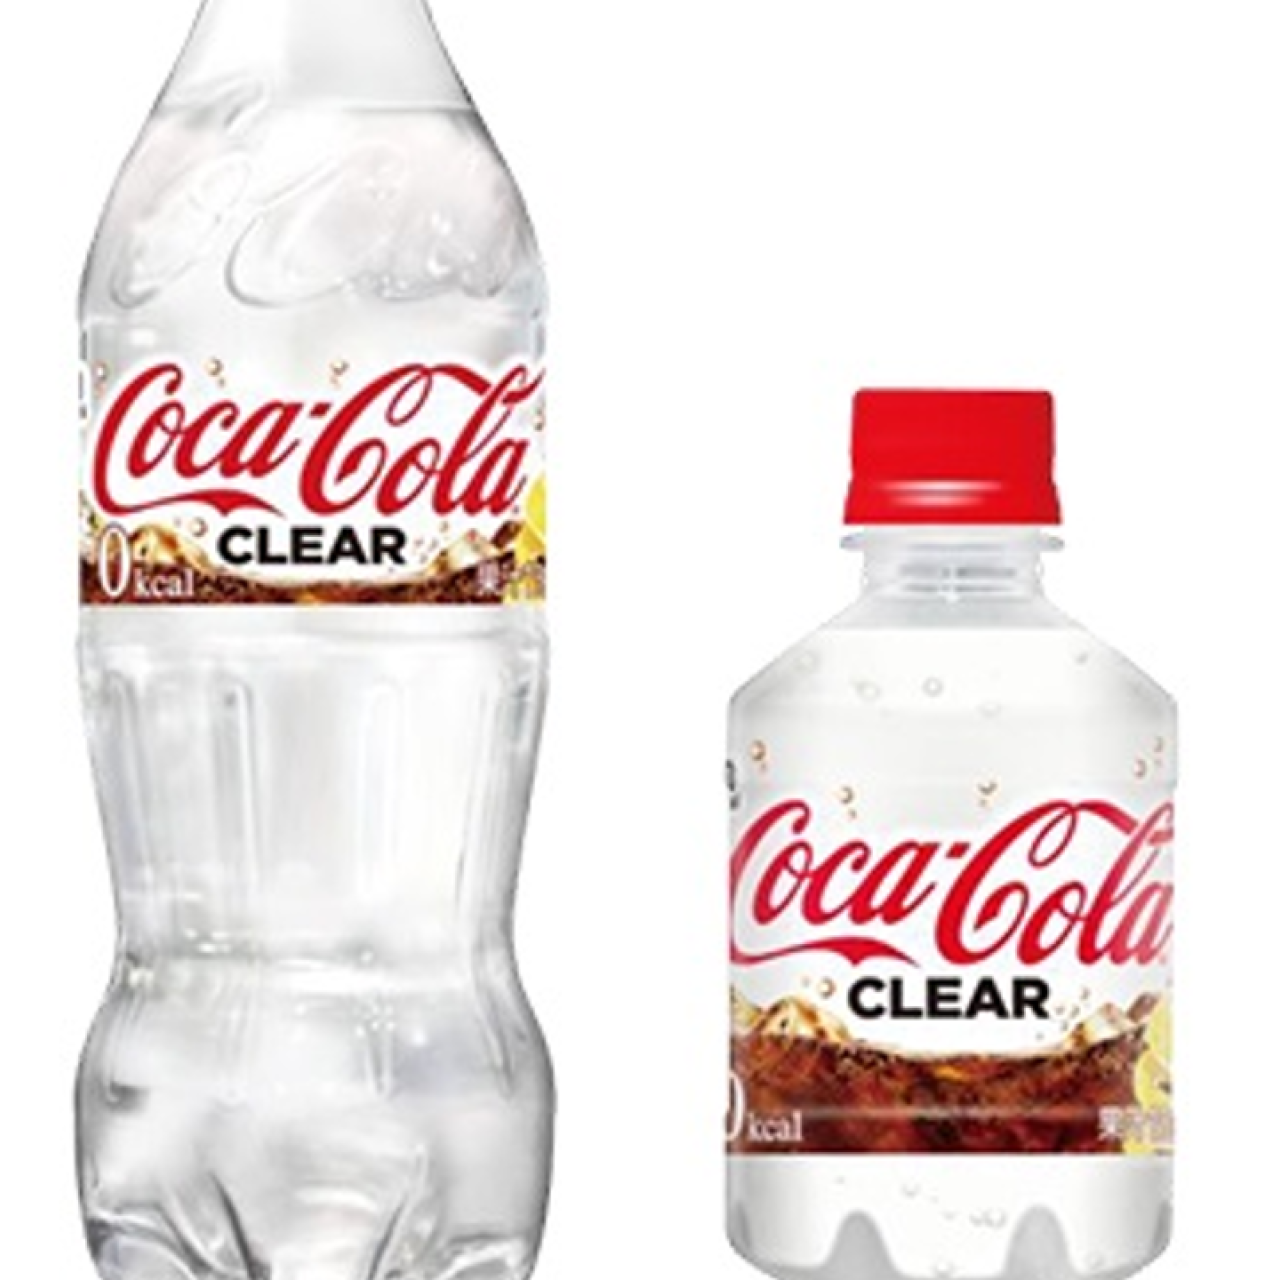 Japan is first in the world to get 'Coca-Cola Clear', which has no